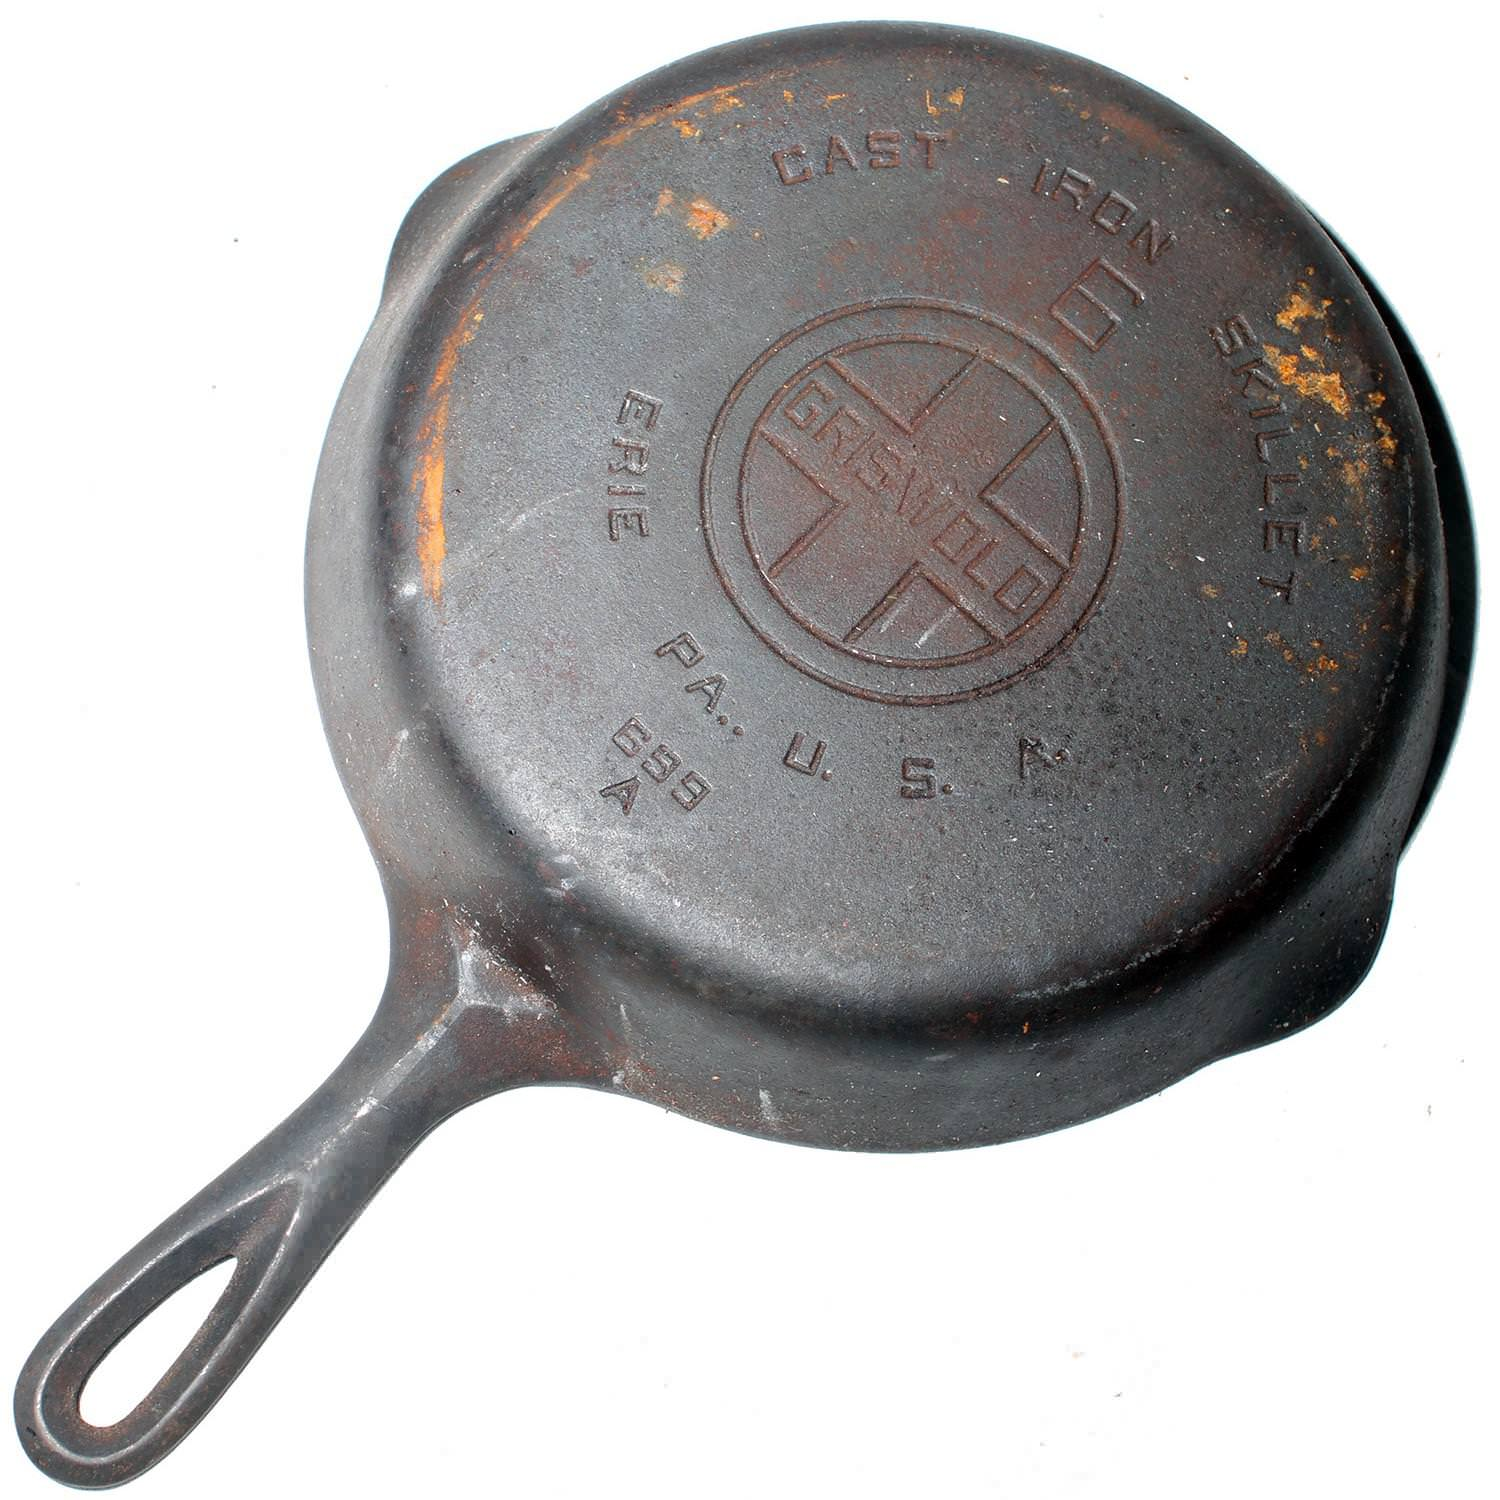 Image of: Antique Cast Iron Skillet Most Value